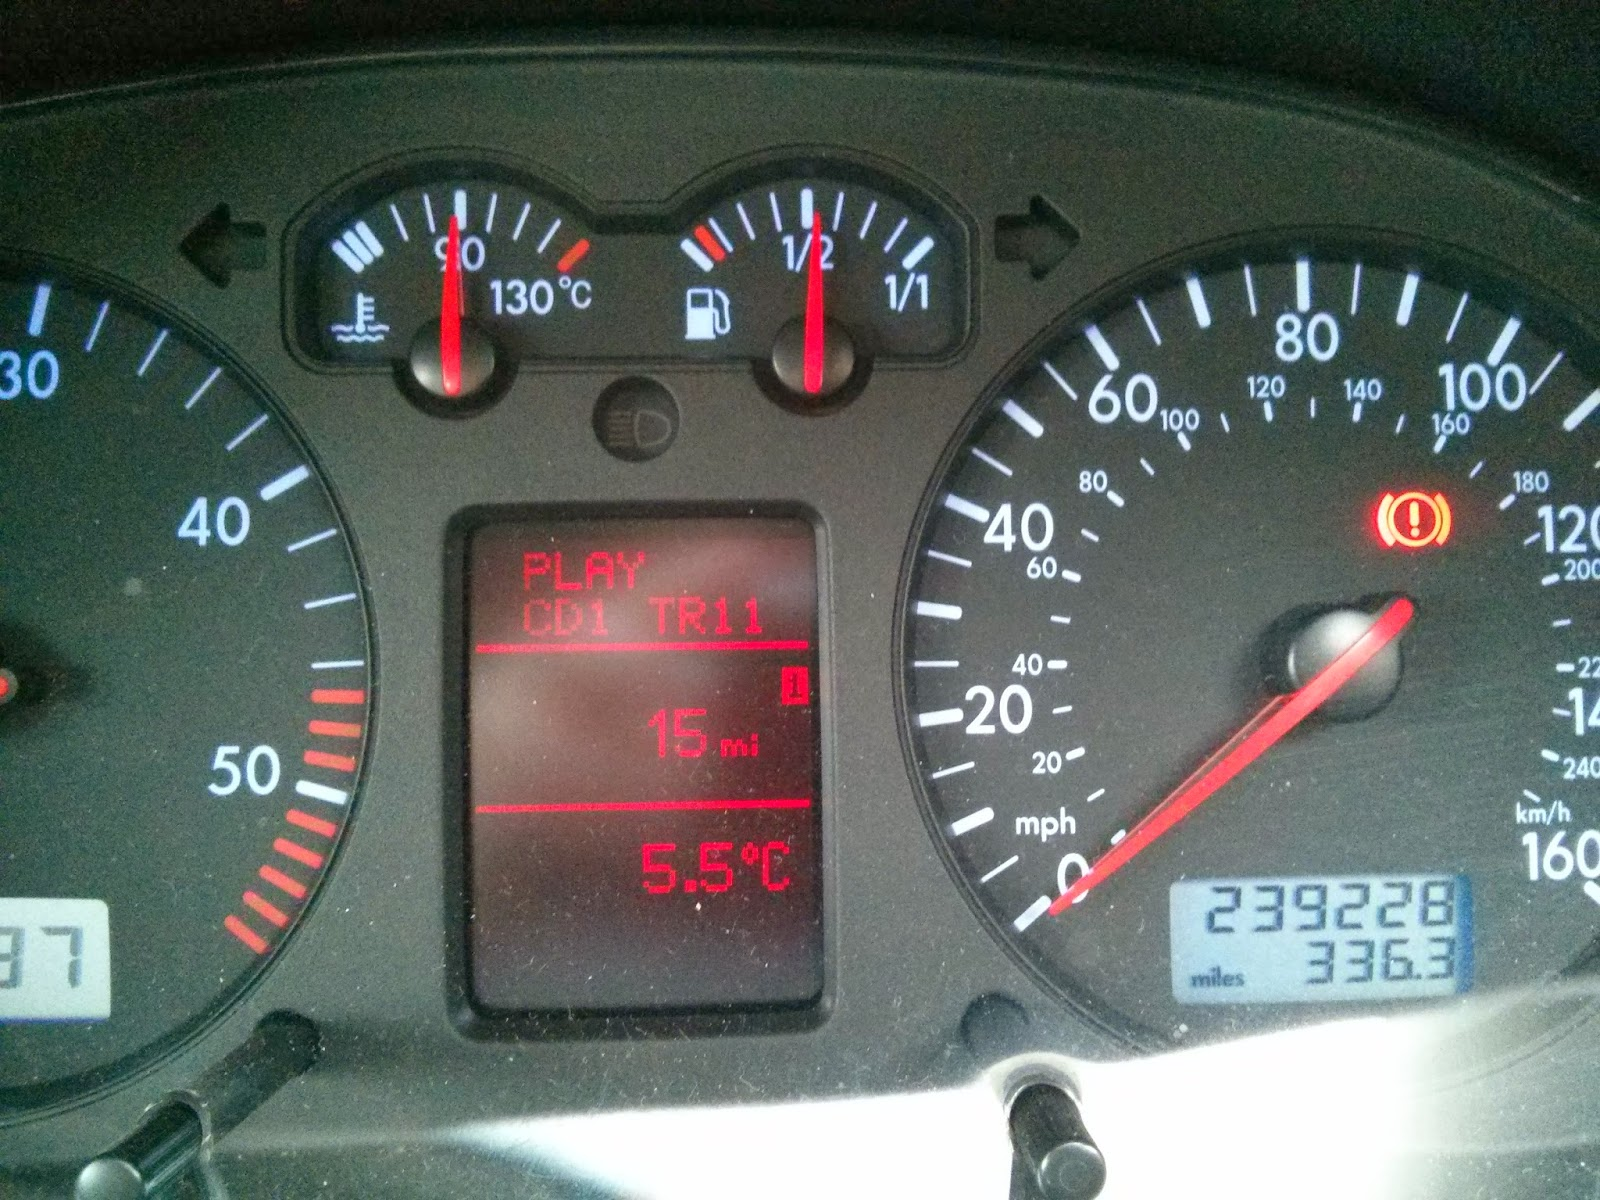 VW Golf Mk4 TDI Diesels Advice, Tips and Reviews: How to